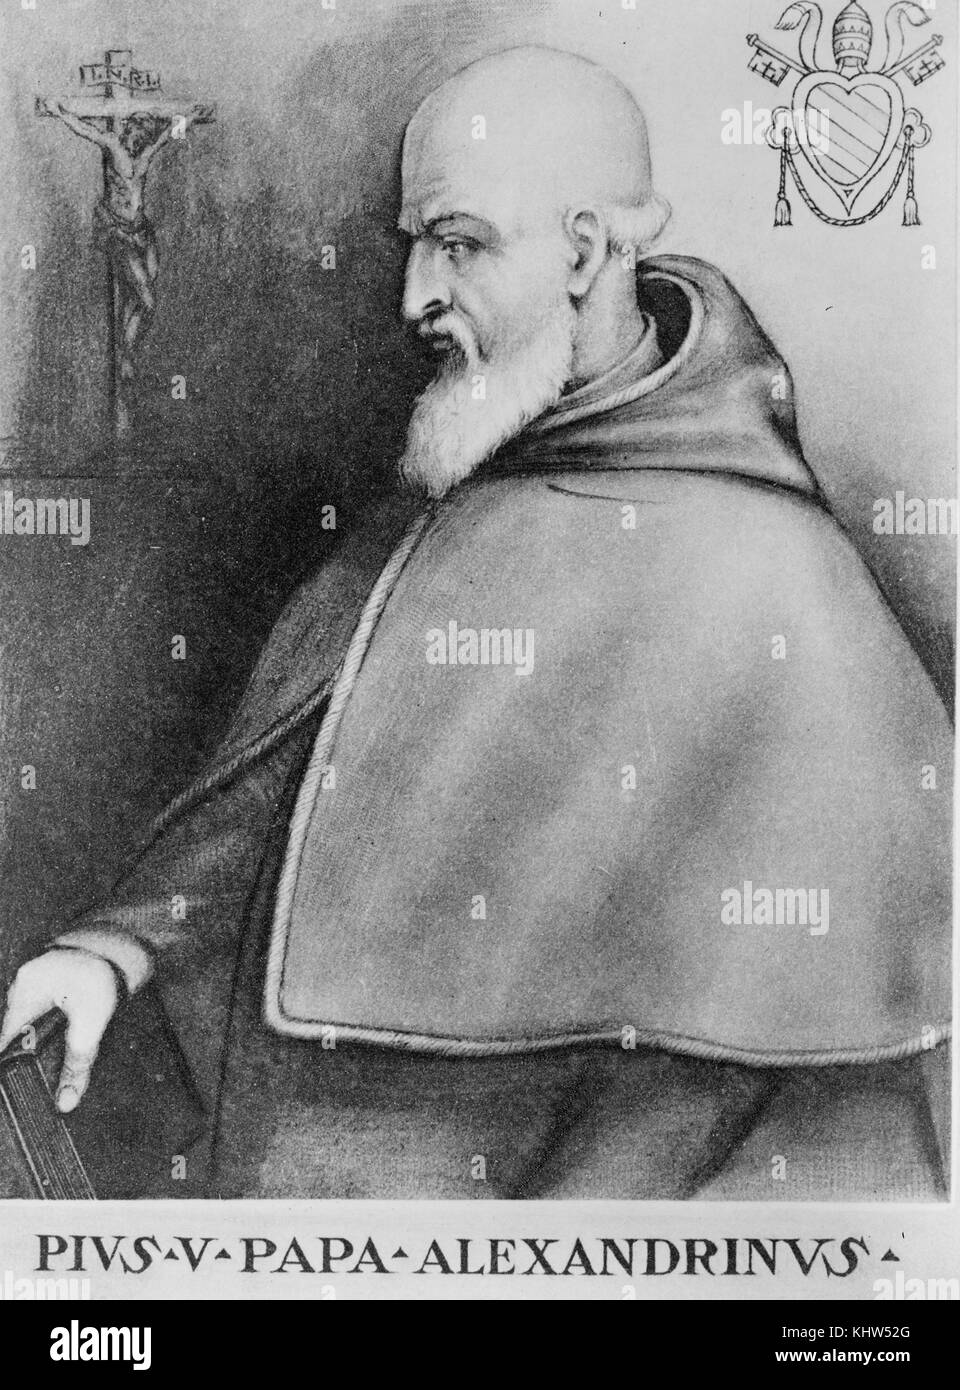 Portrait of Pope Puis V (1566-1572) noted for his role in the Council of Trent, the Counter-Reformation, and the - Stock Image